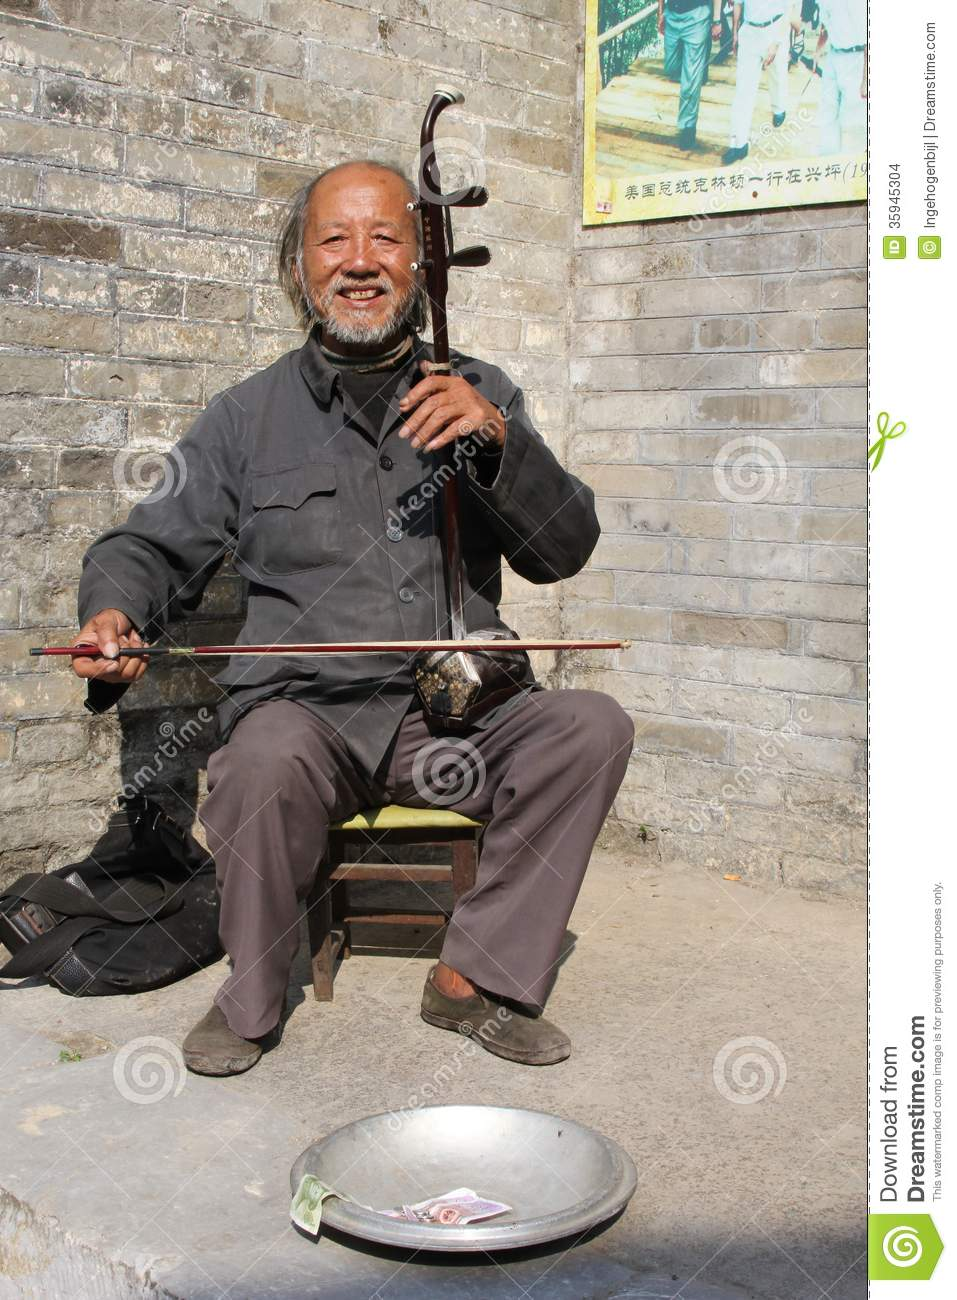 A man is playing the traditional musical instrument which is called Erhu or Nanhu and sounds like a violin, China